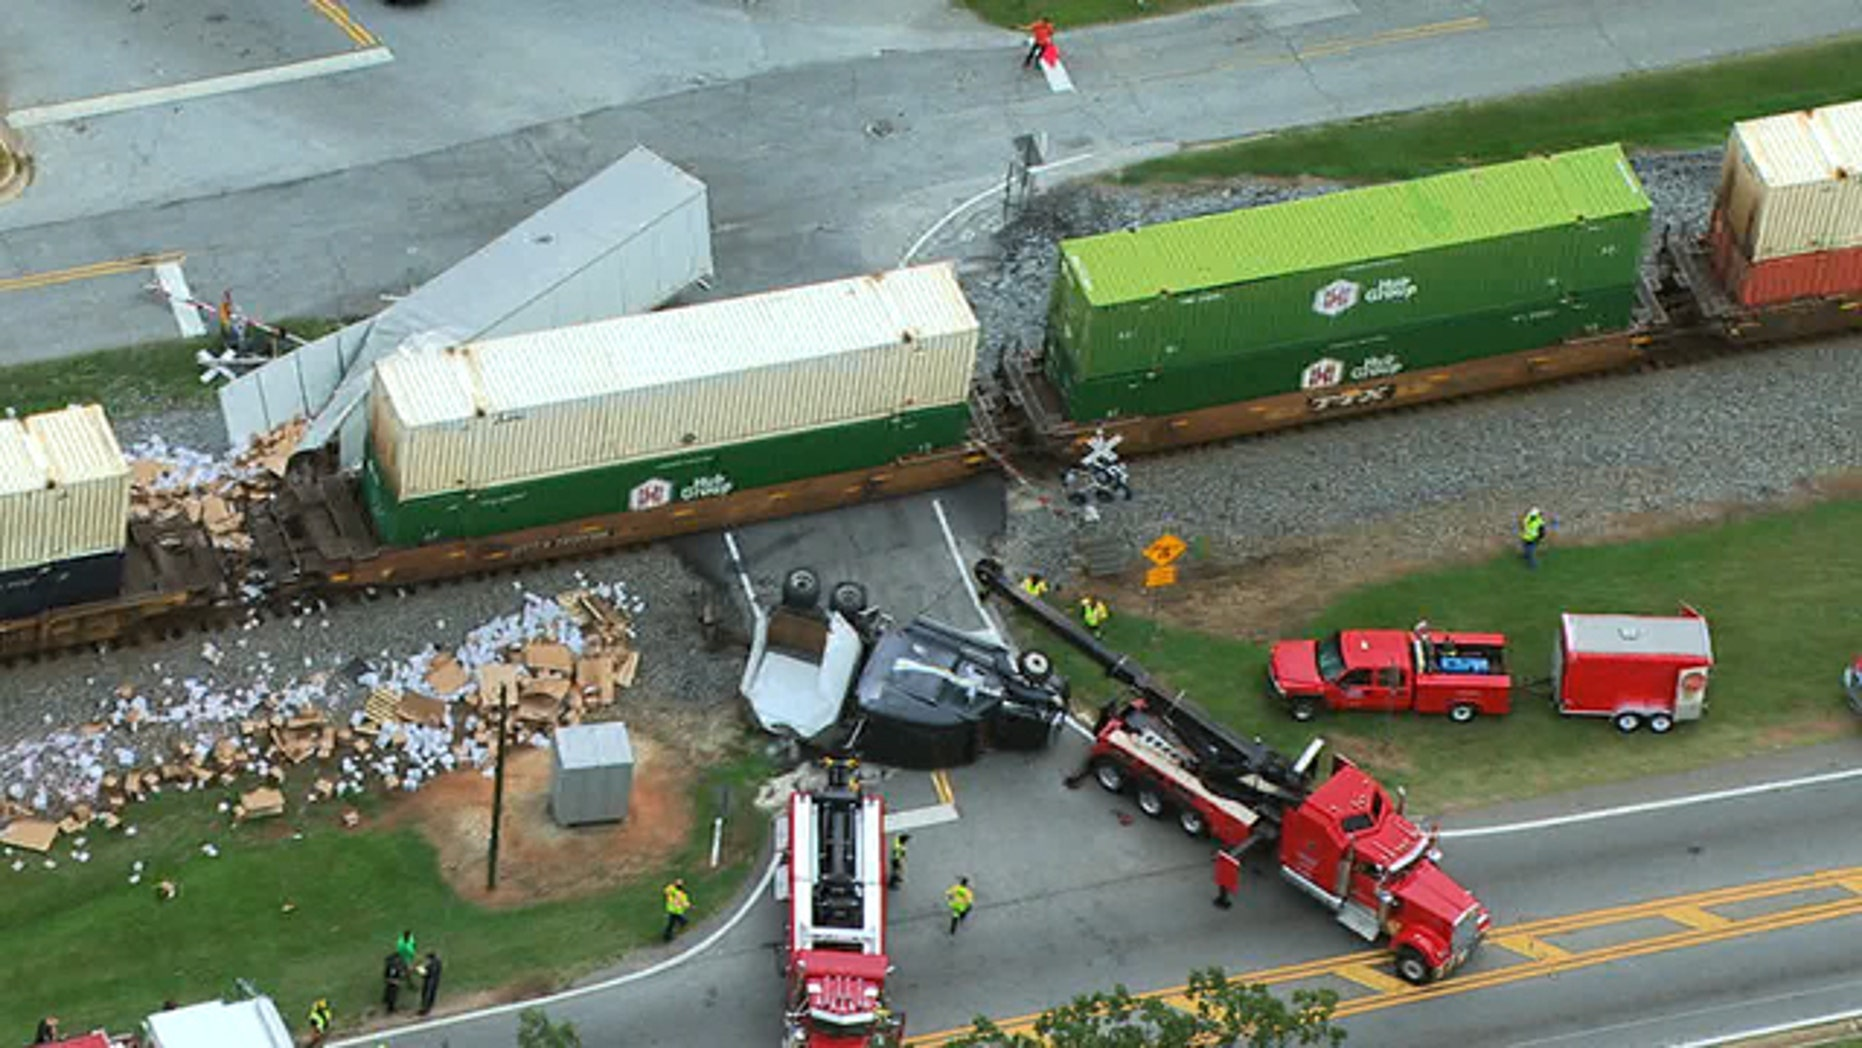 Emergency personnel respond to the site of a collision involving a train and a semi-truck in Henry County, Ga. Thursday.